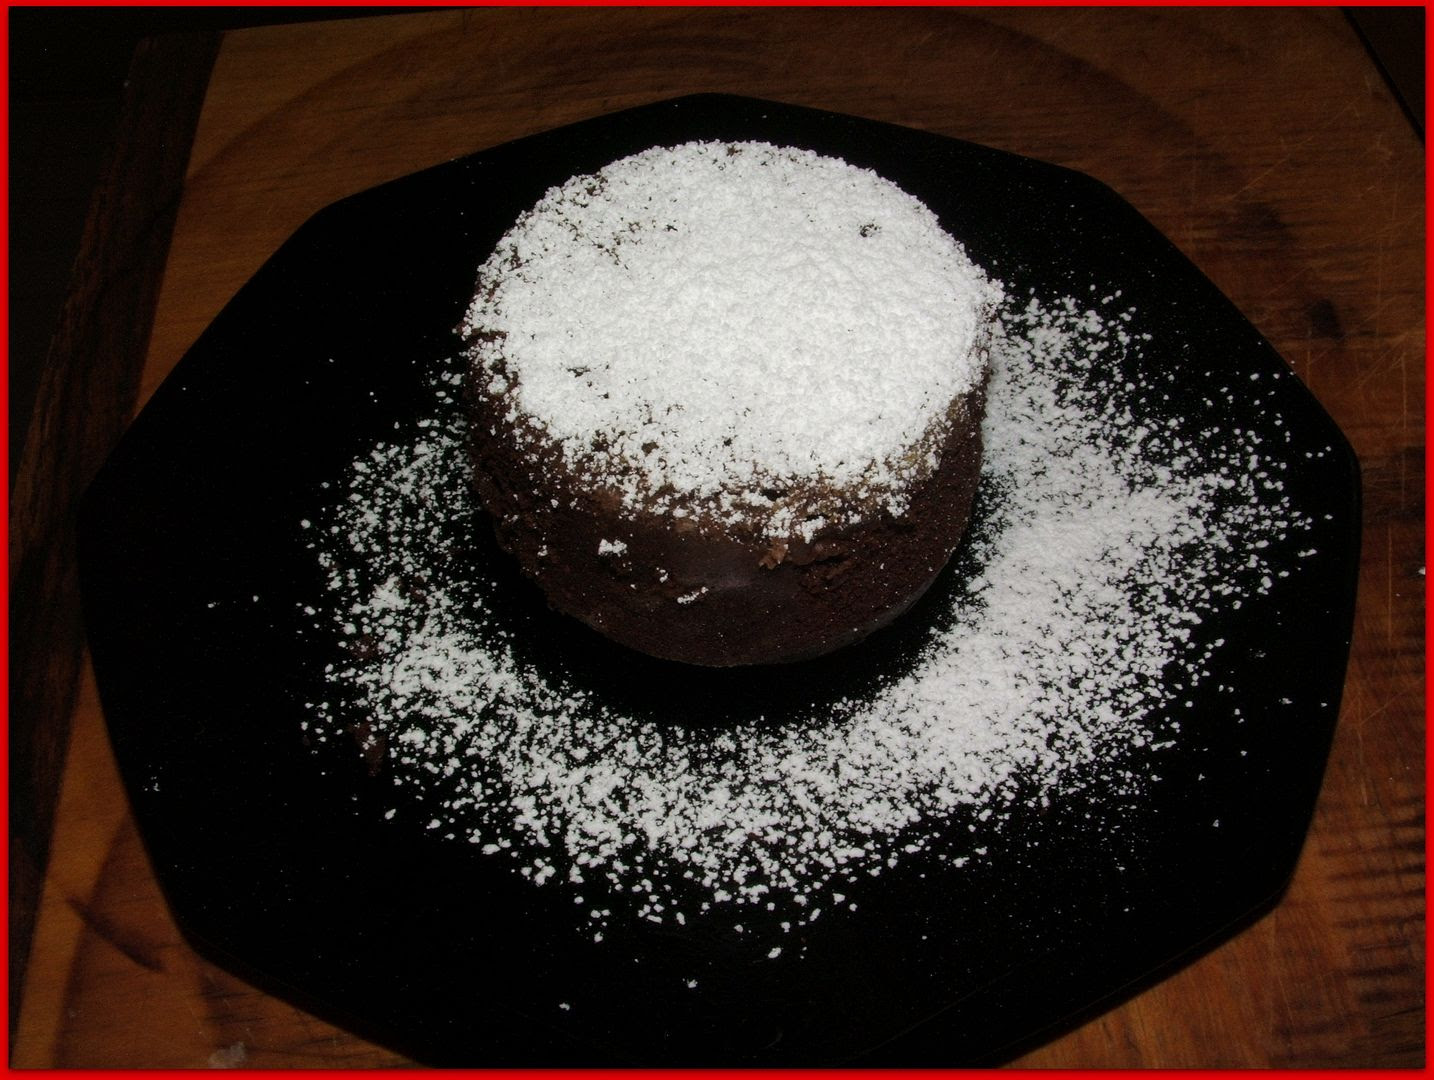 Cocoa Lava Cake by Angie Ouellette-Tower for godsgrowinggarden.com photo 001_zpsad829d09.jpg